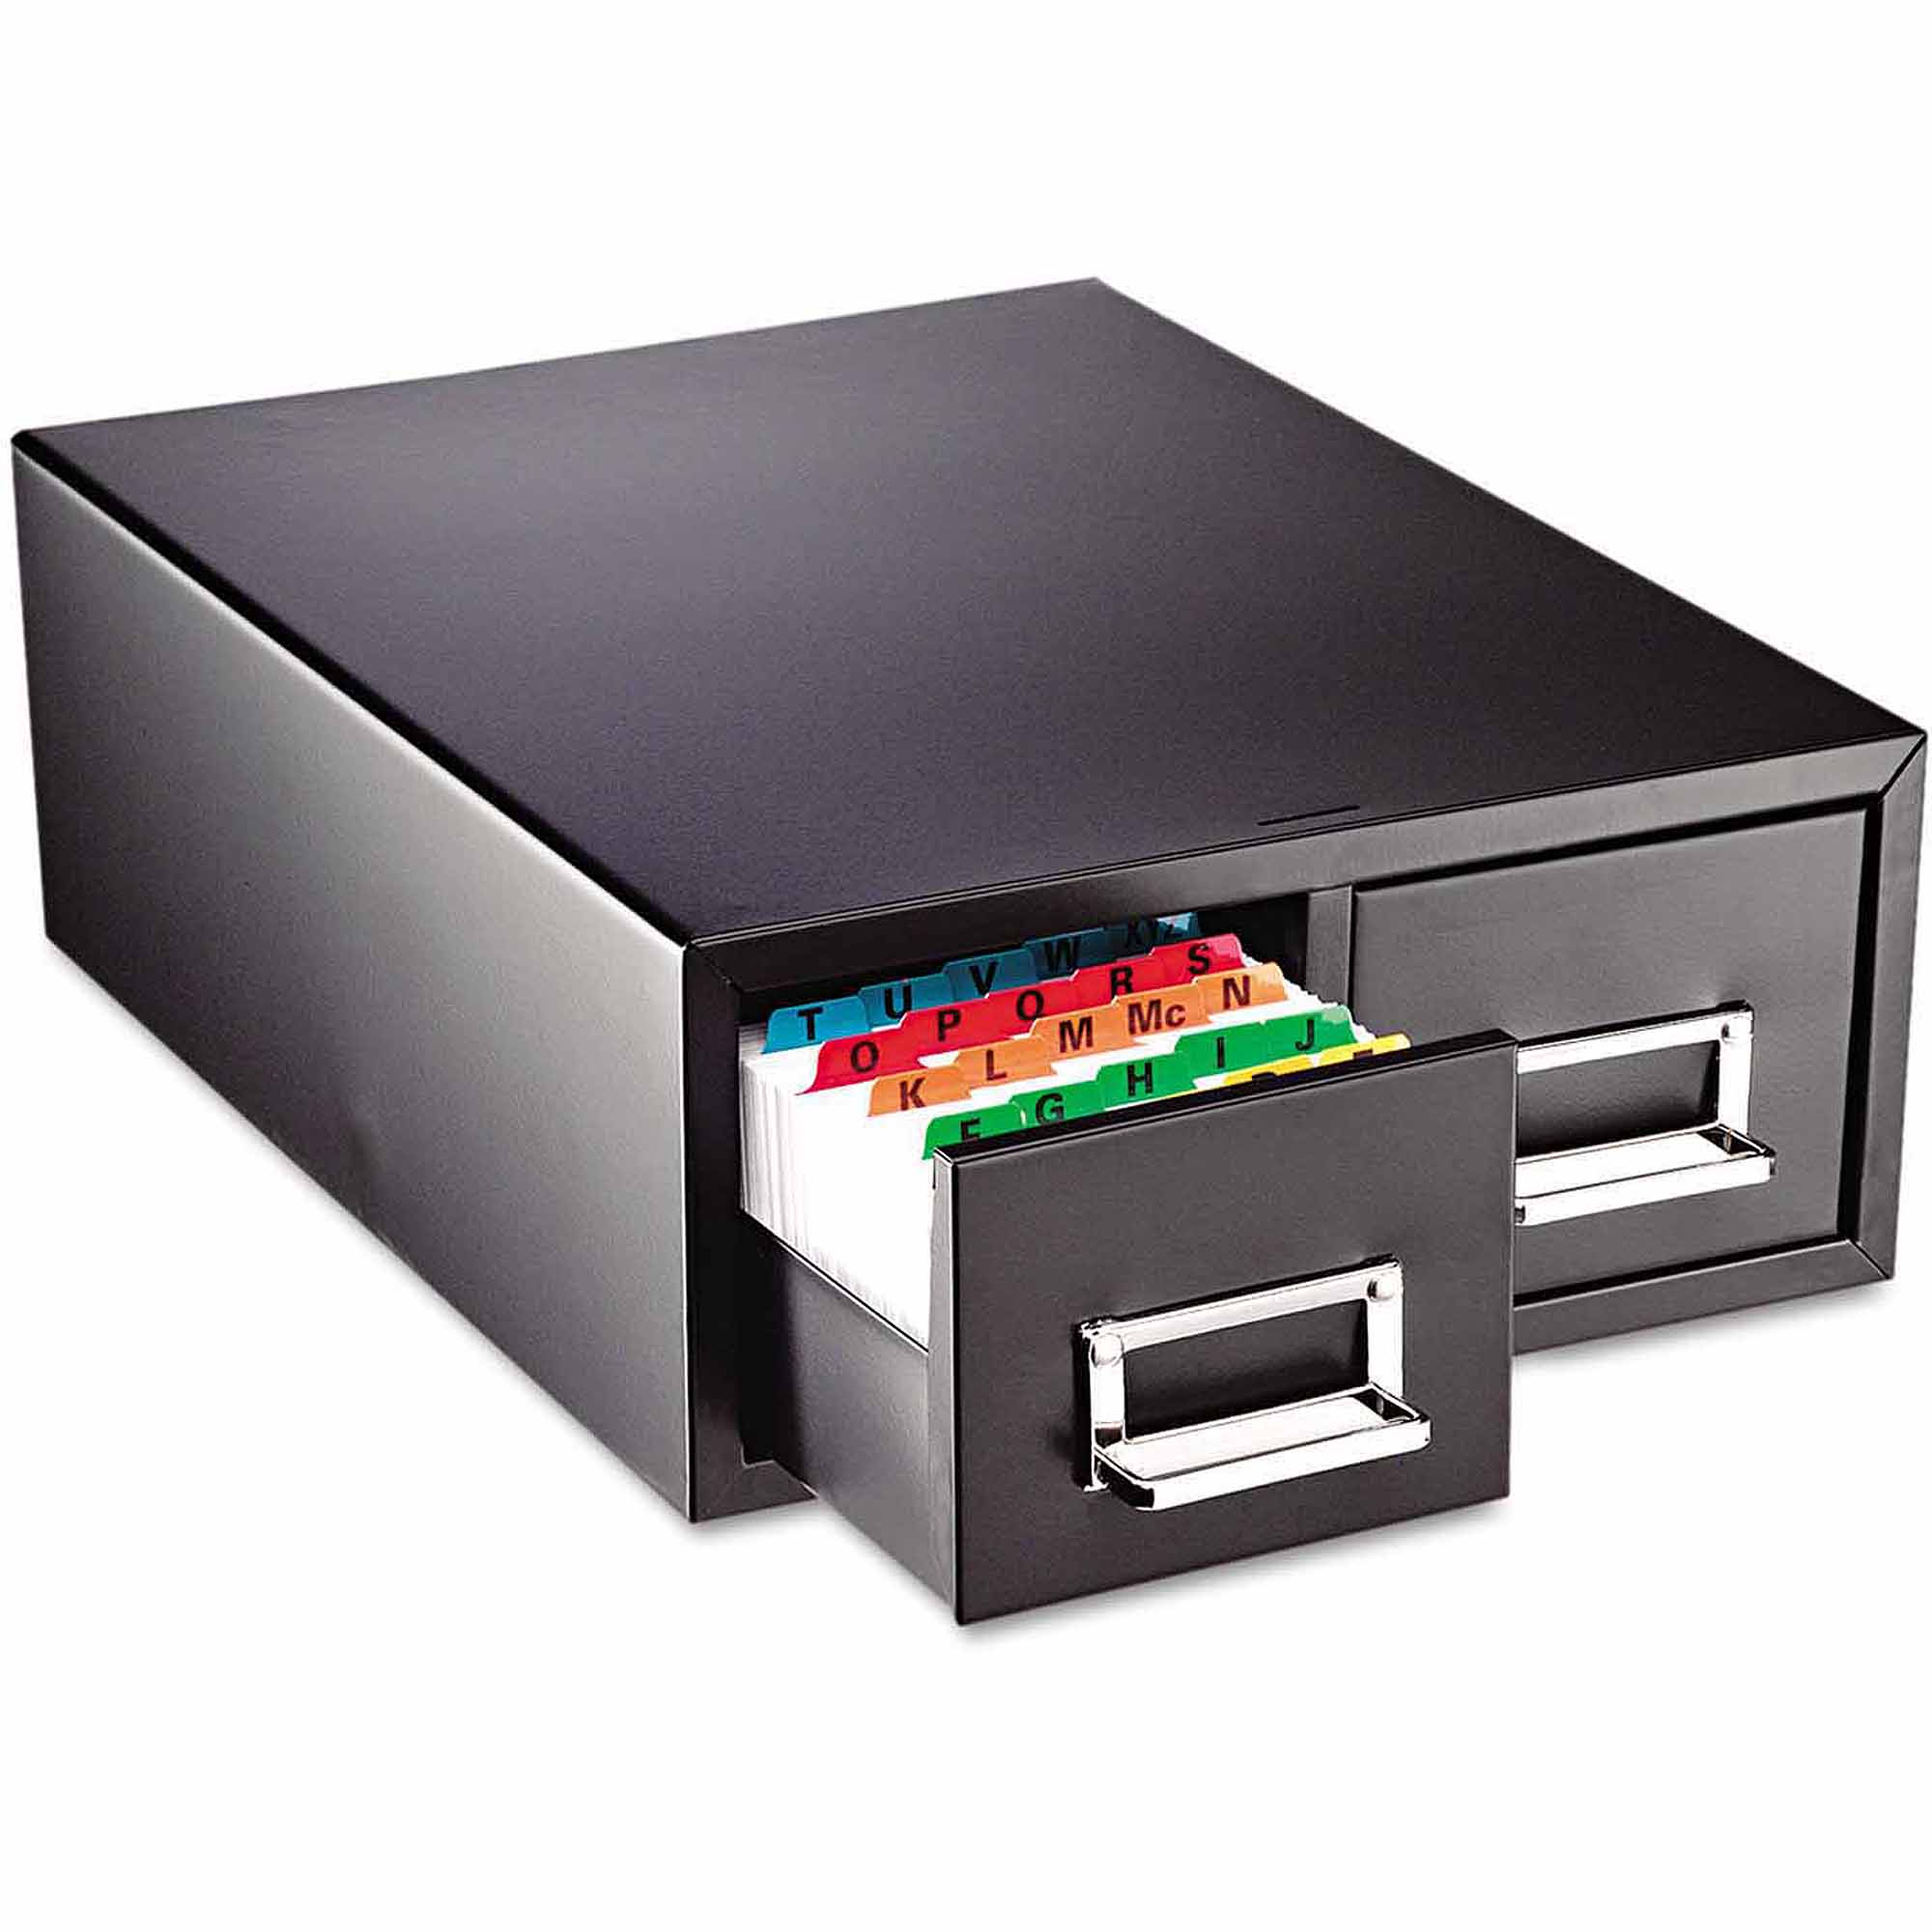 "SteelMaster Drawer Card Cabinet, Holds 3,000 6"" x 9"" cards"